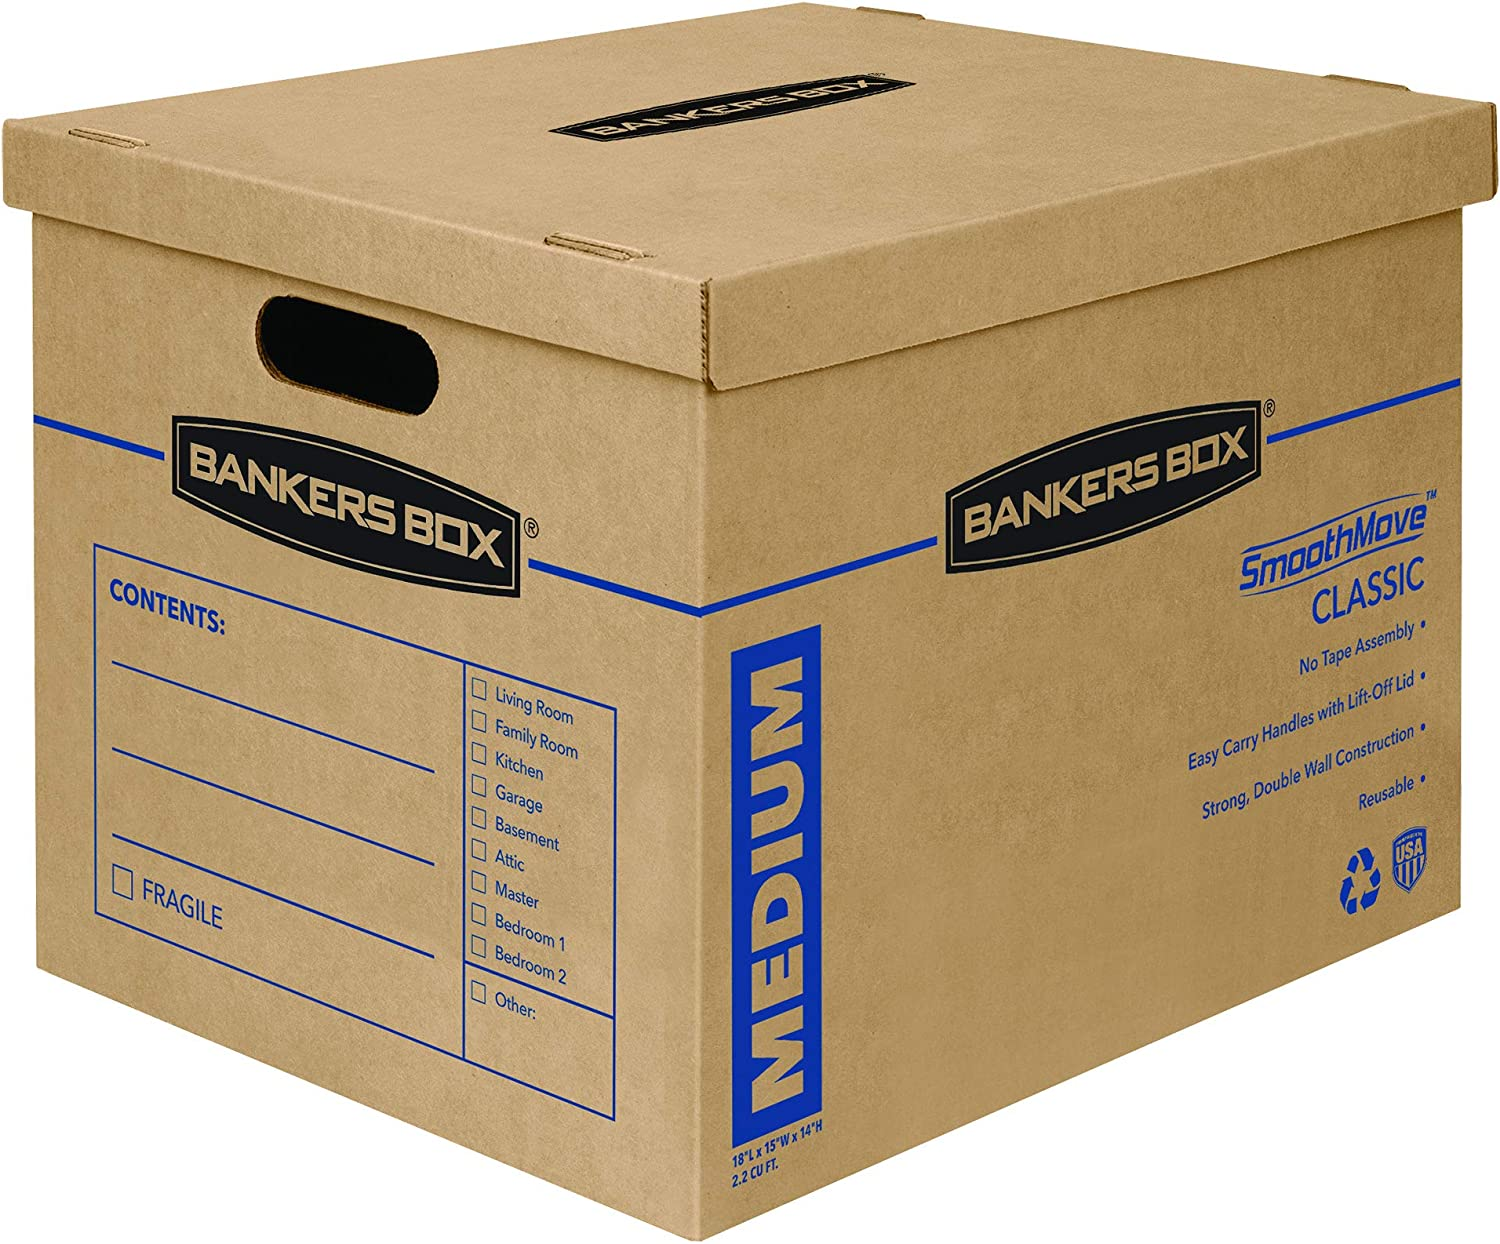 Bankers Box SmoothMove Classic Moving Boxes, Tape-Free Assembly, Easy Carry Handles, Medium, 18 x 15 x 14 Inches, 10 Pack (7717204) : Office Products